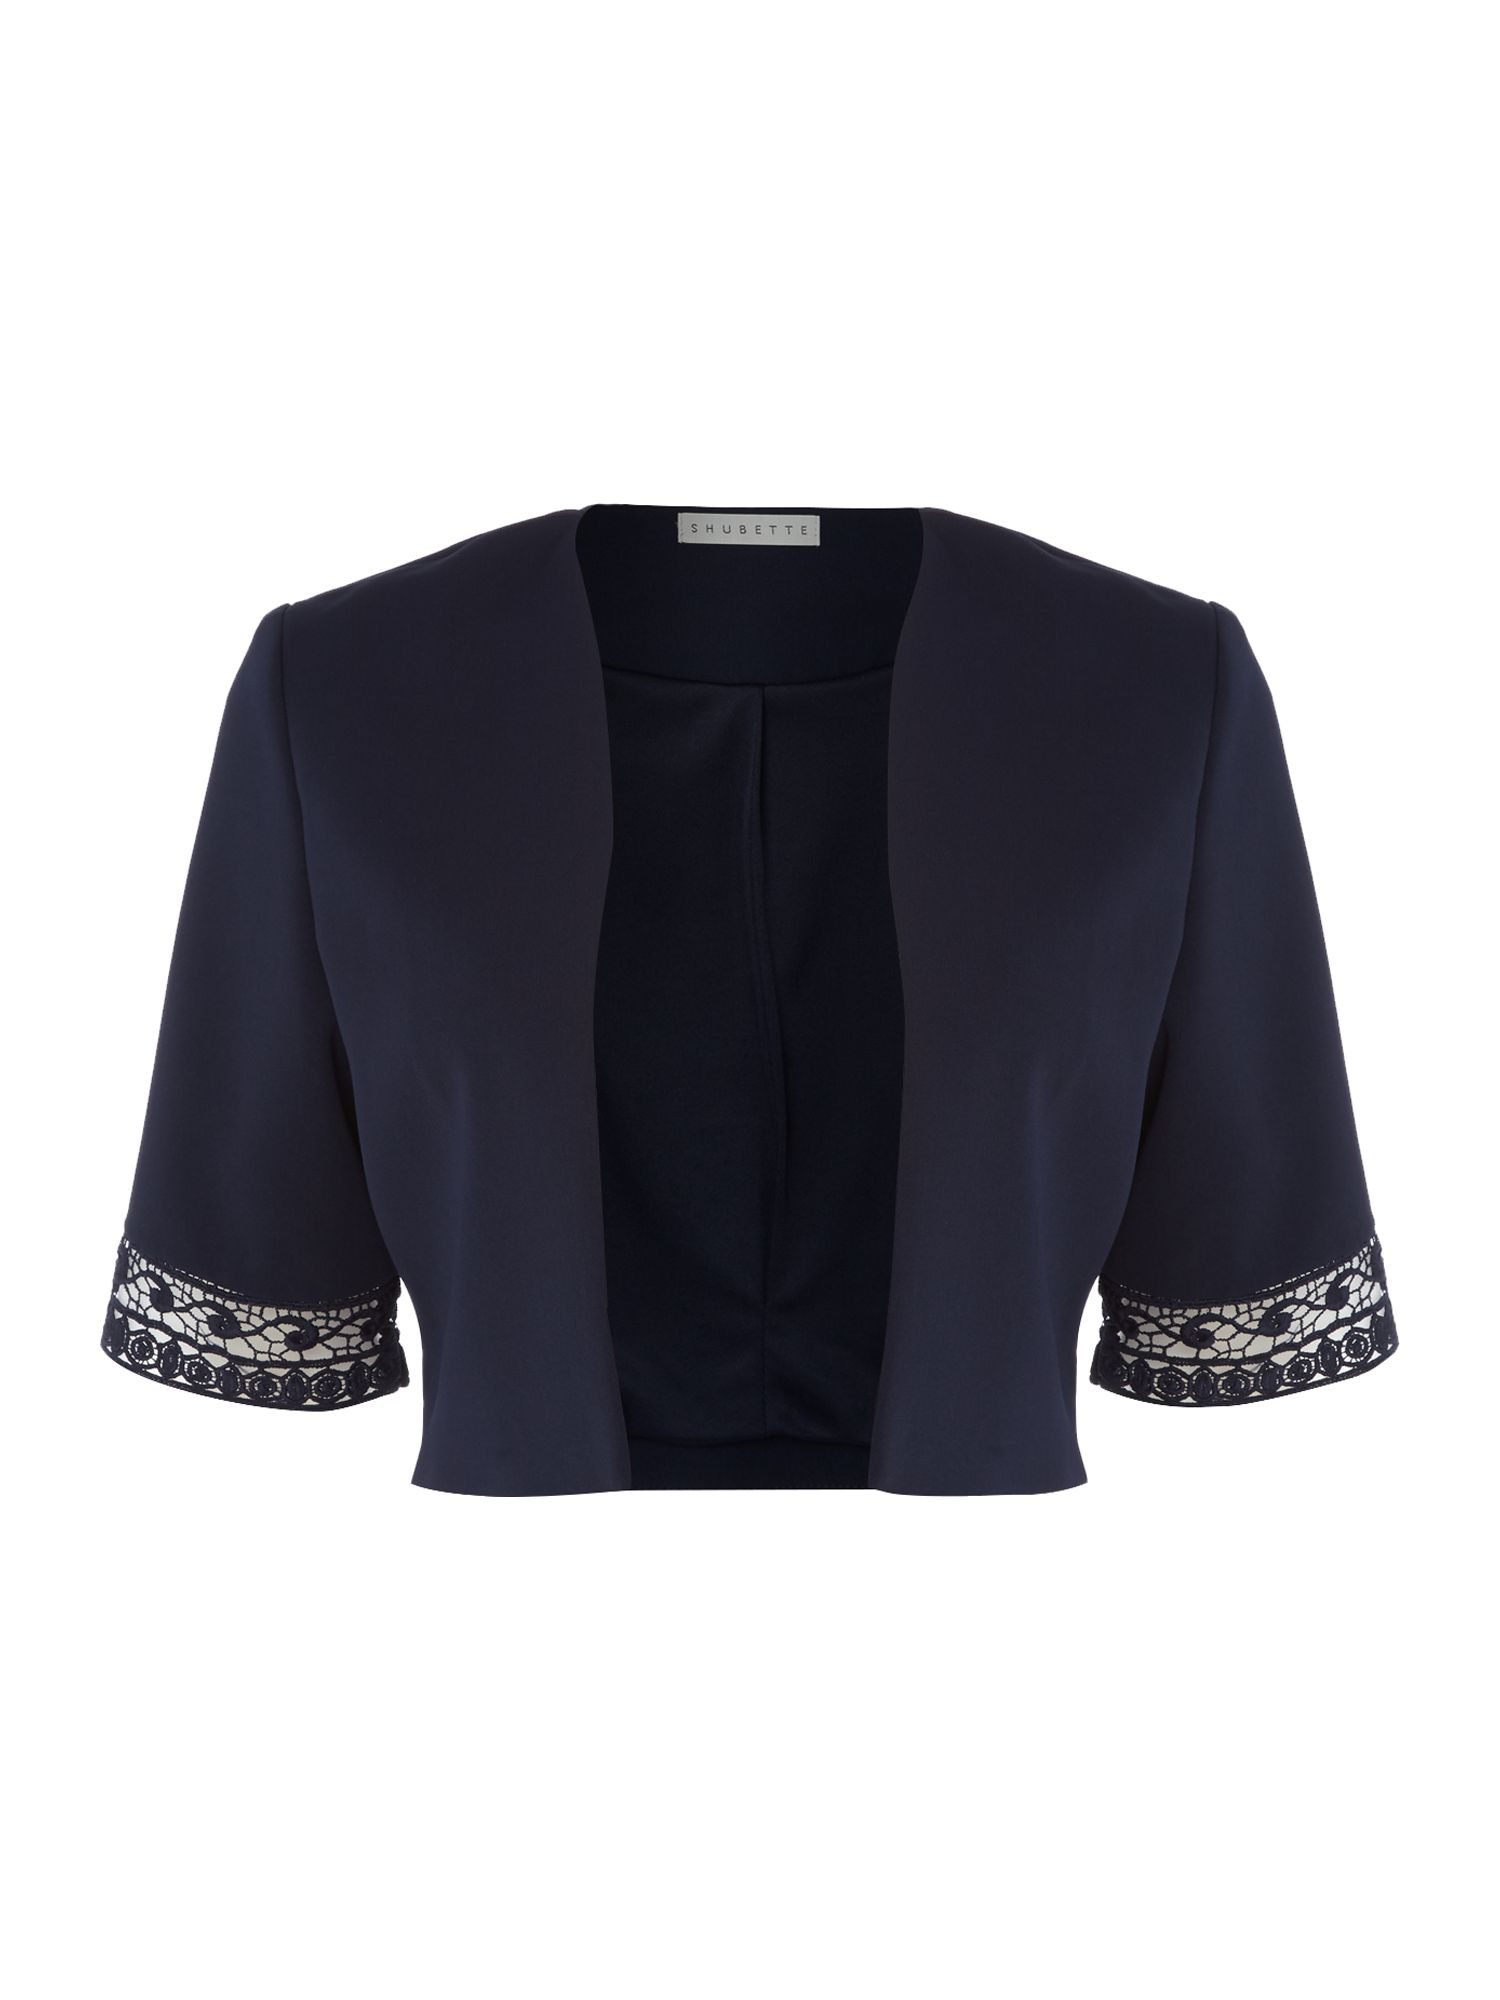 Shubette Shubette Crepe jacket with lace detail, Navy